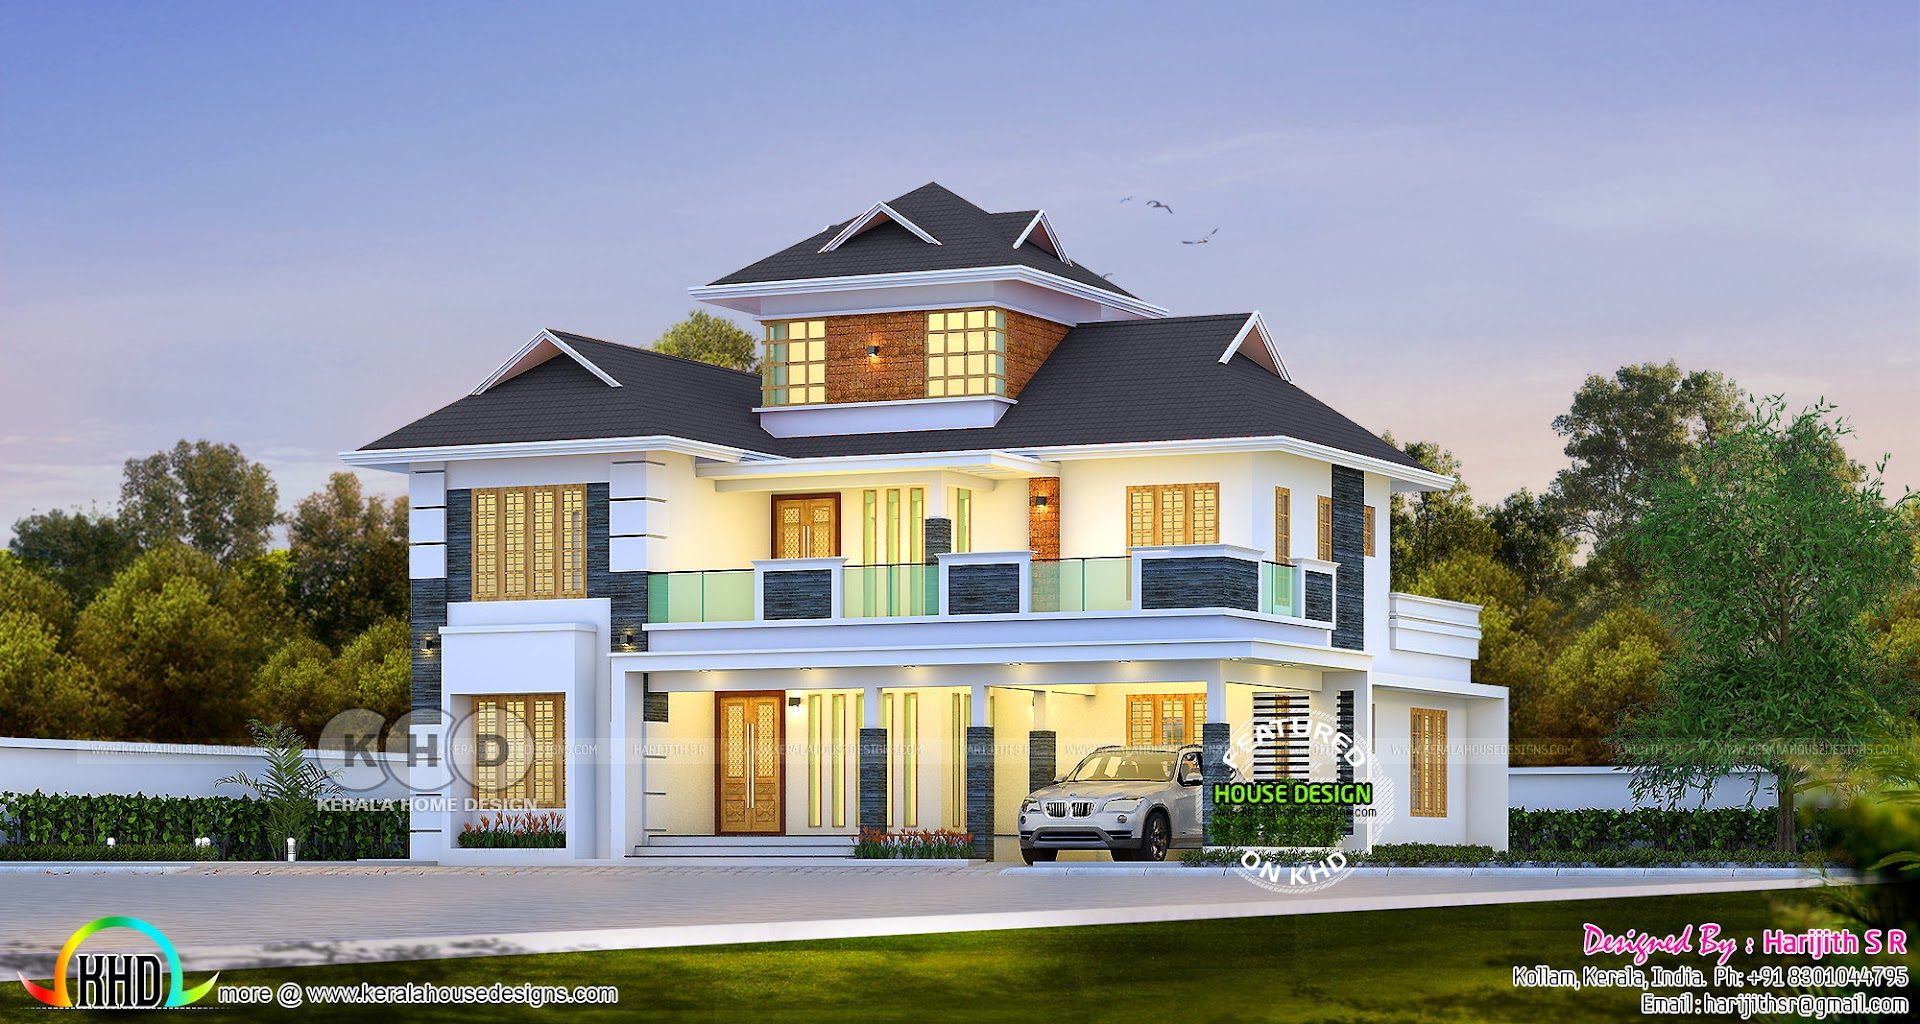 2843 Sq Ft Beautiful Sloped Roof Modern House Design Kerala Home Design Bloglovin